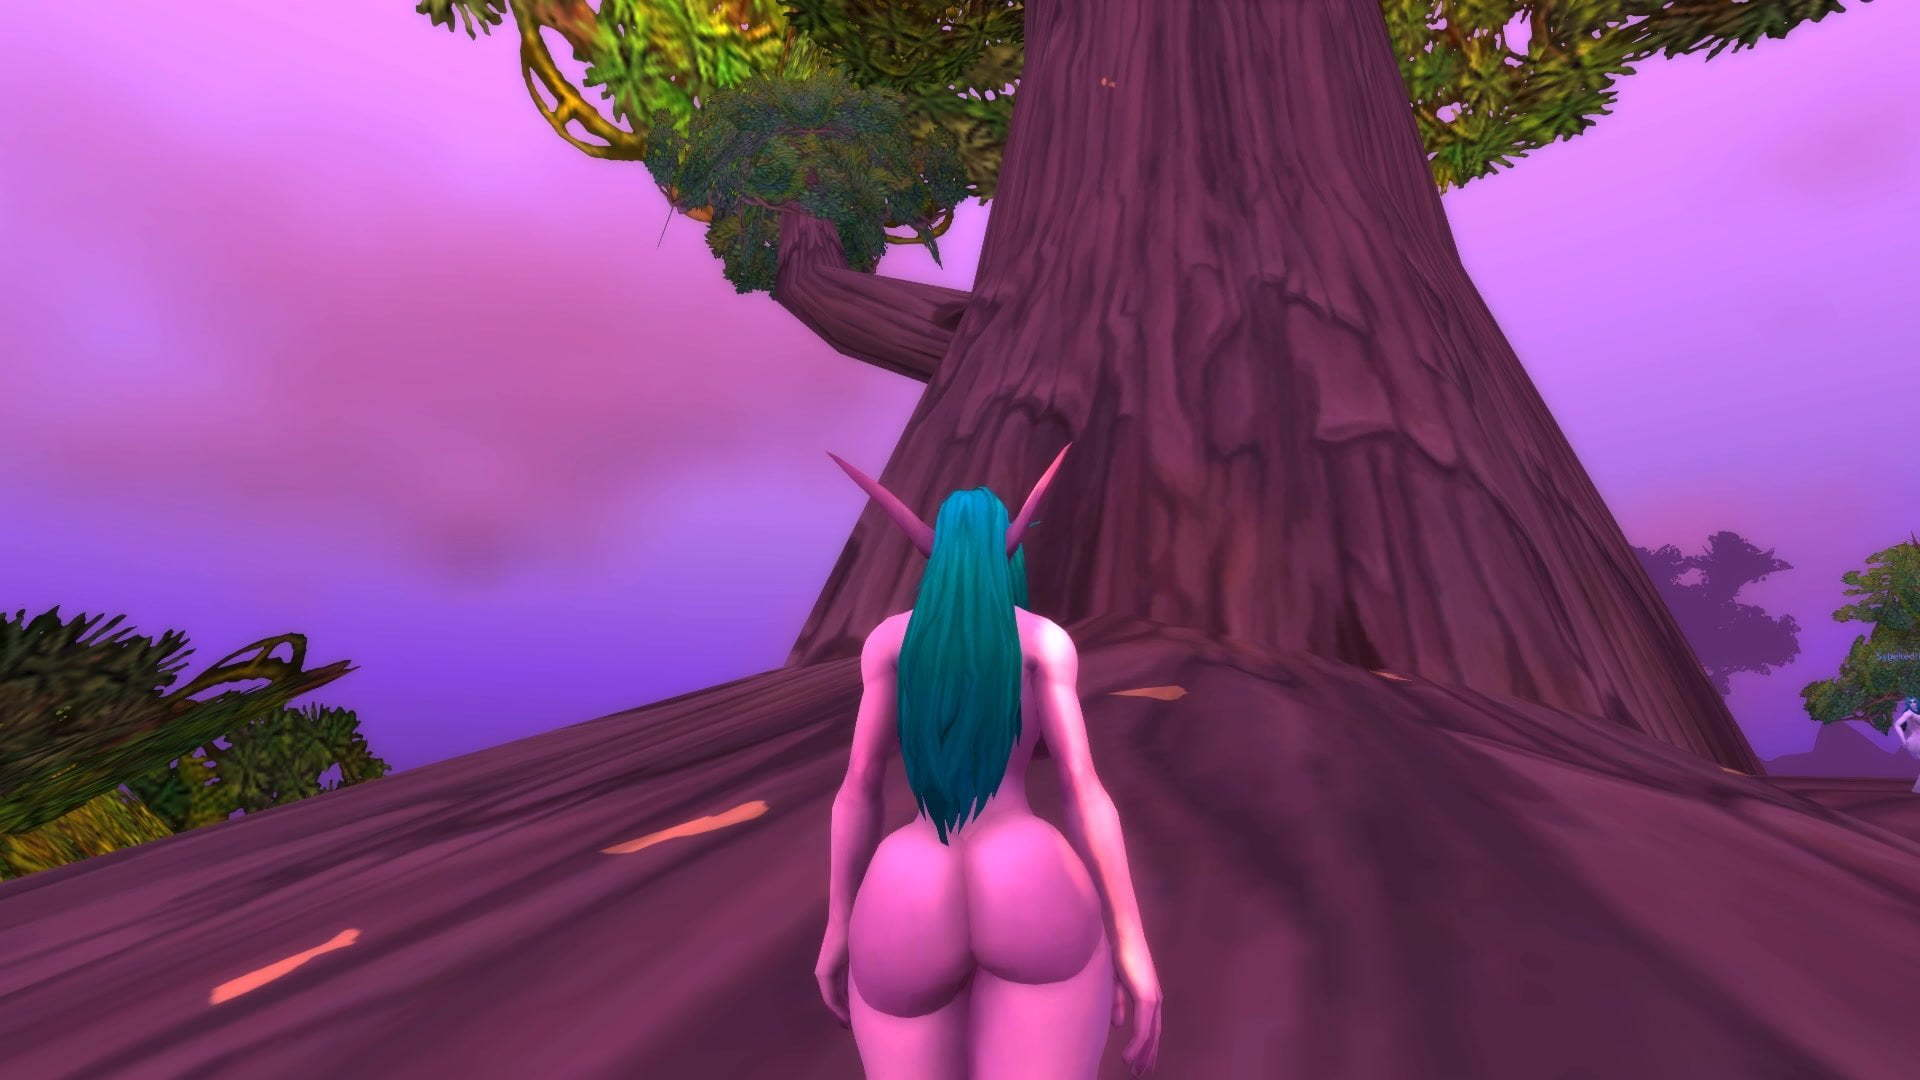 Warcraft world nude curvy of